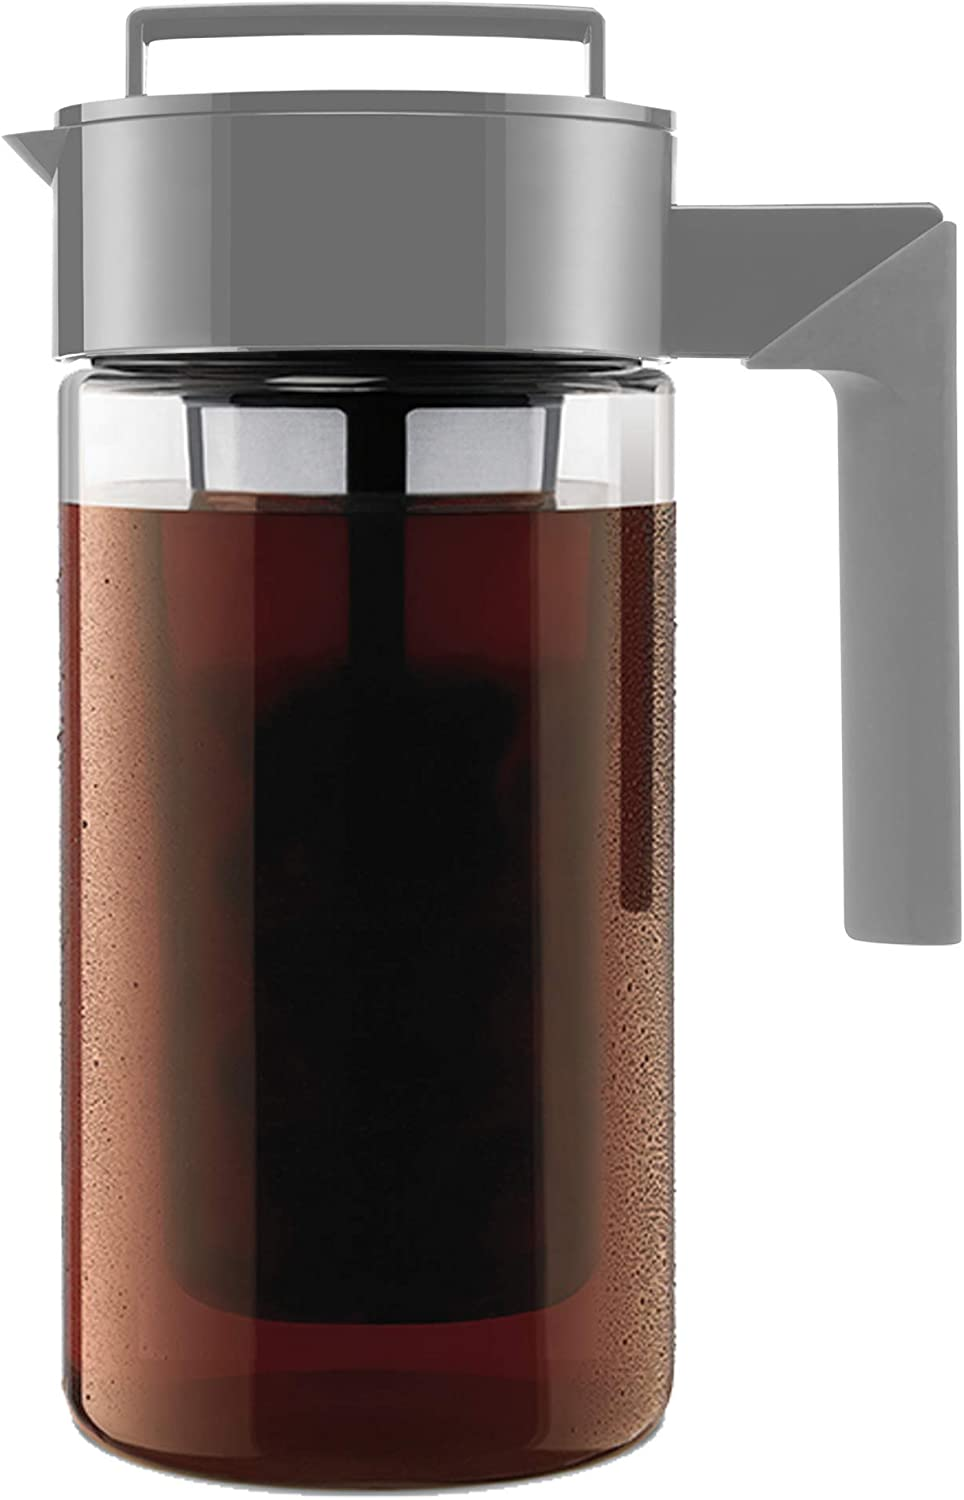 Takeya Patented Deluxe Cold Brew Coffee Maker, One Quart, Stone